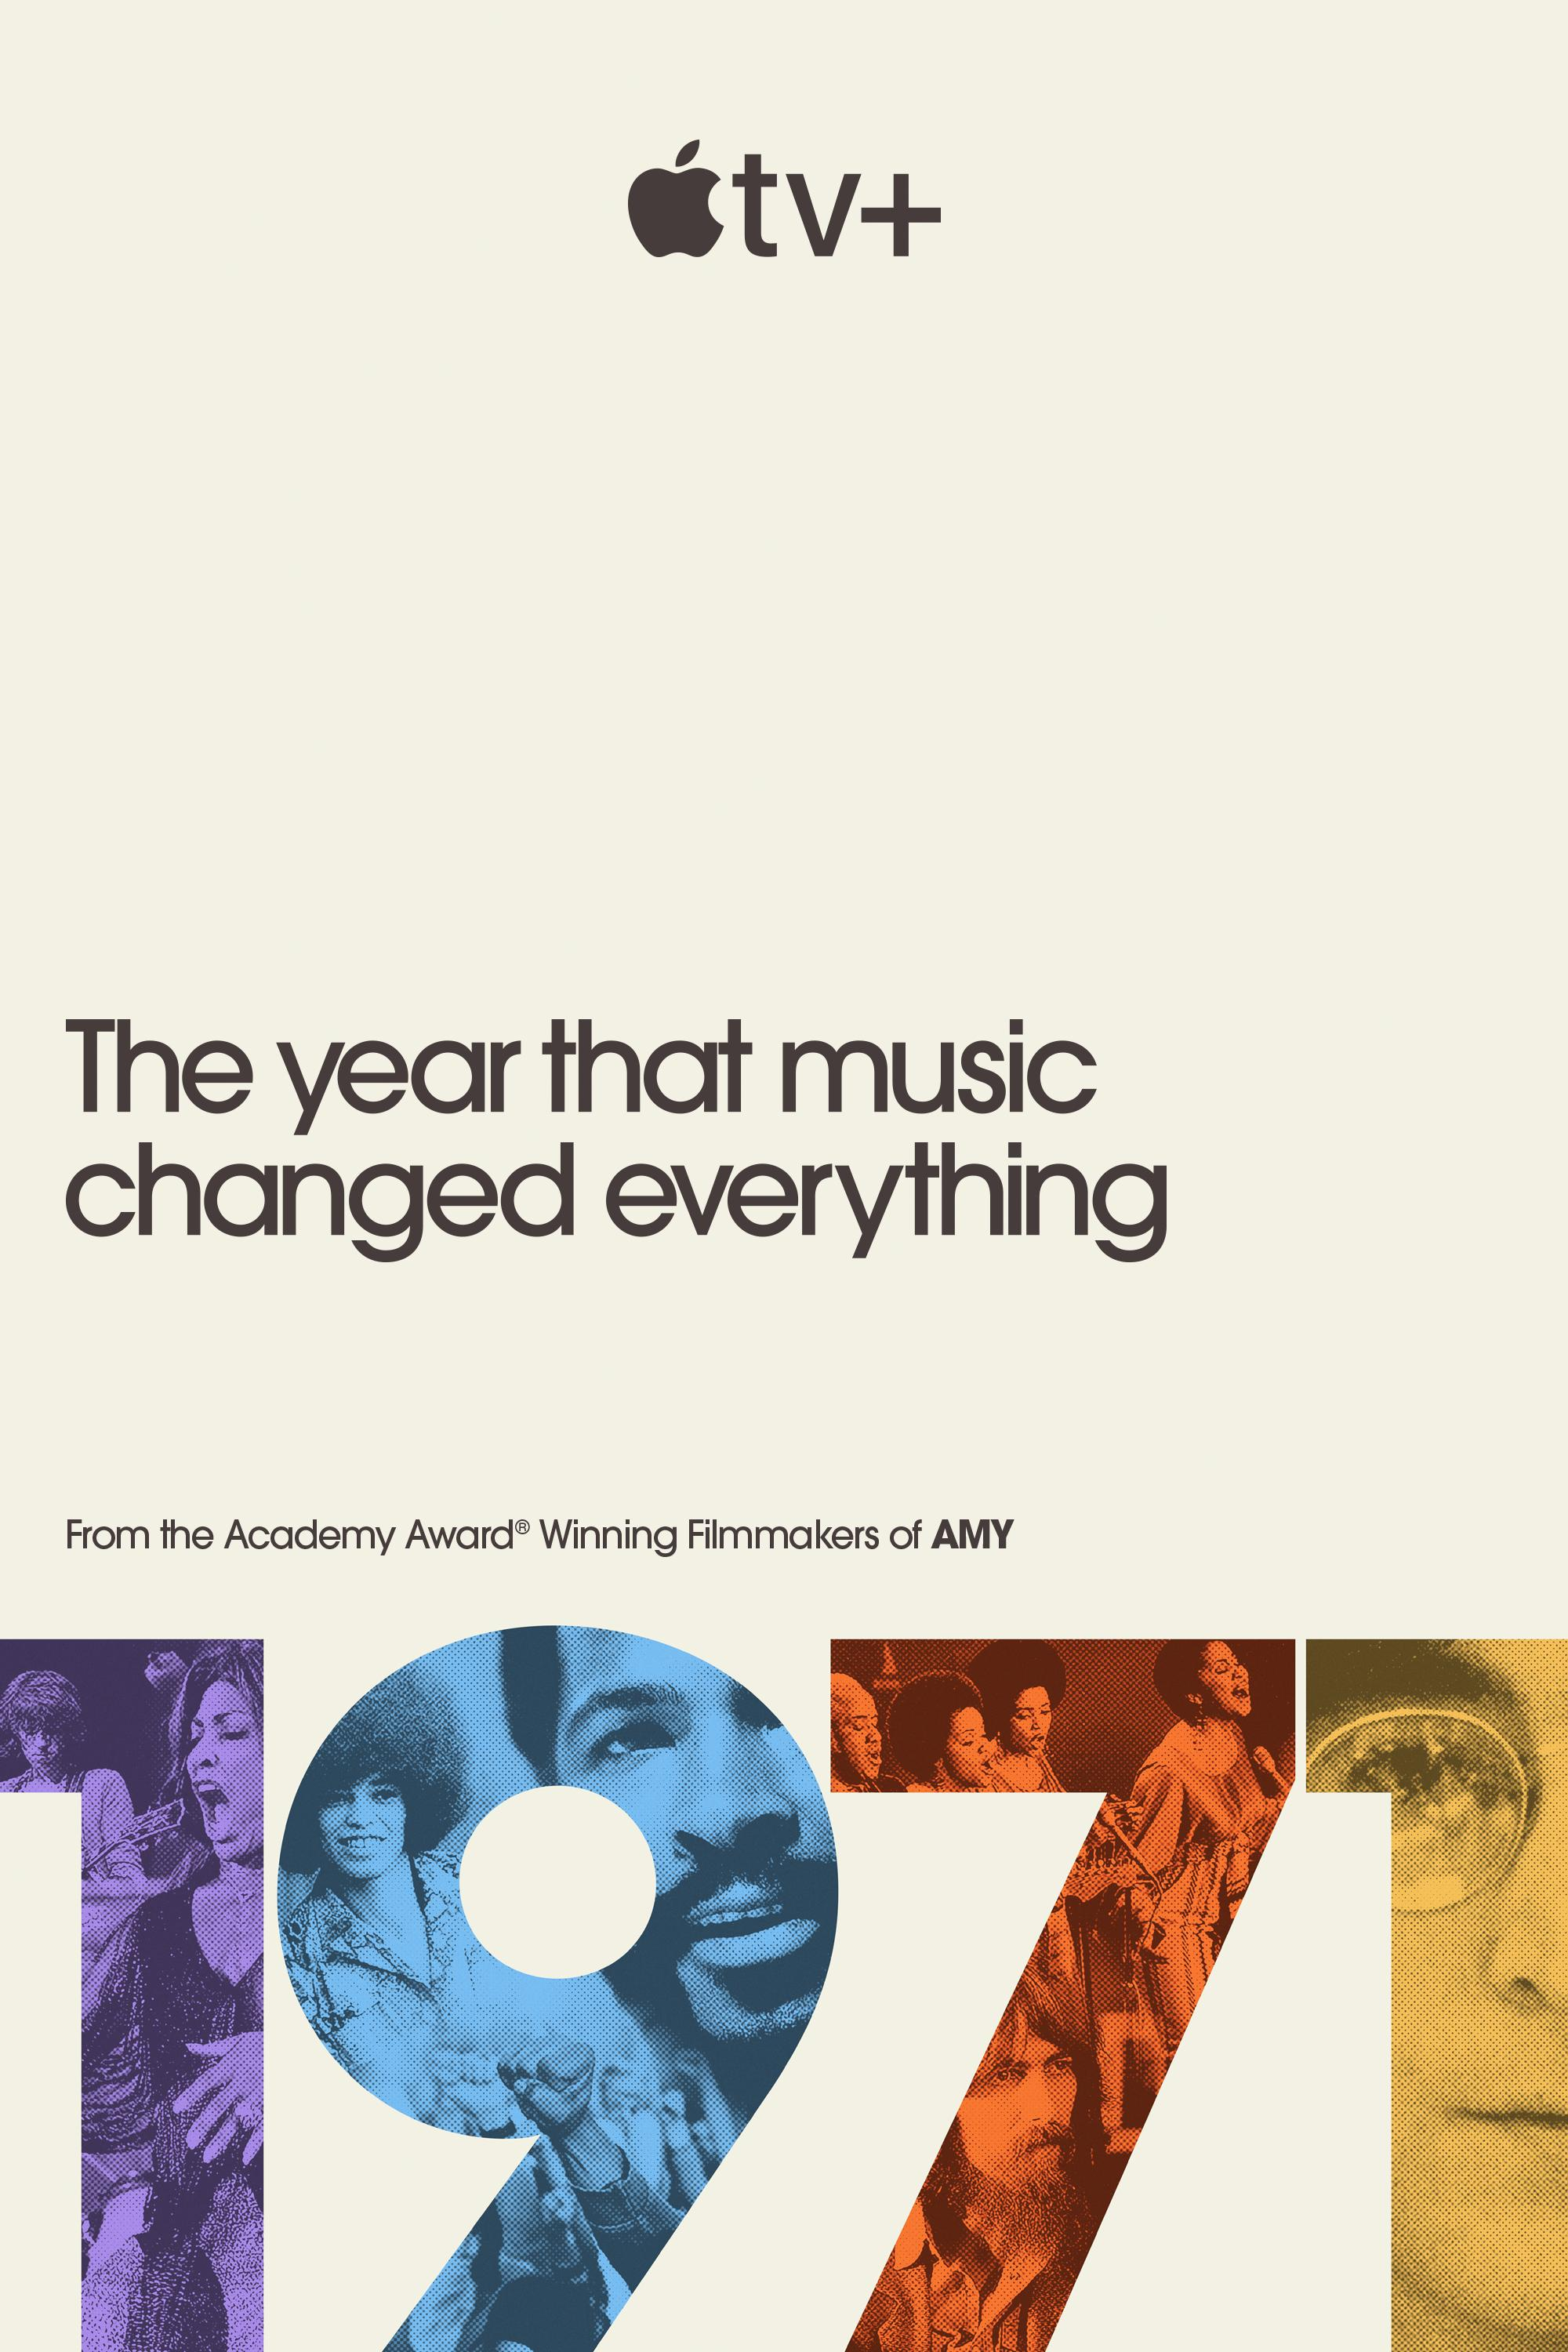 1971: The Year That Music Changed Everything (S01)